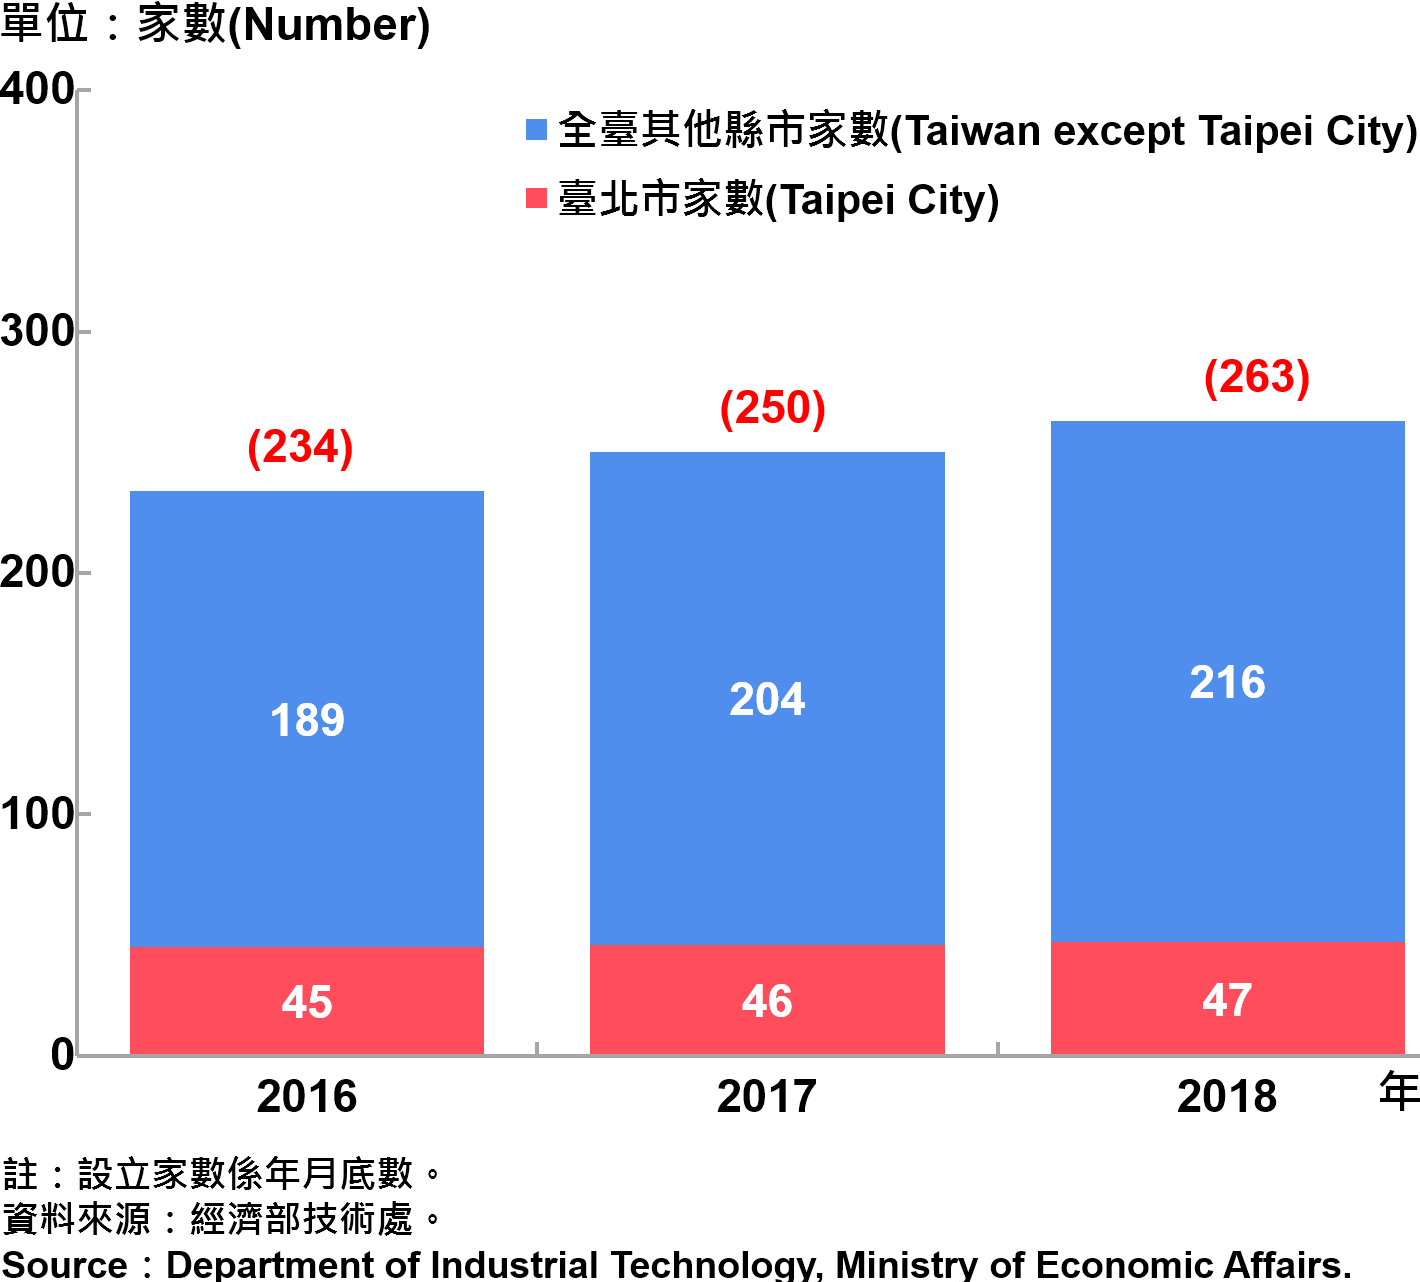 臺北市研發中心設立家數—2018 Number of R&D Centers in Taipei City—2018